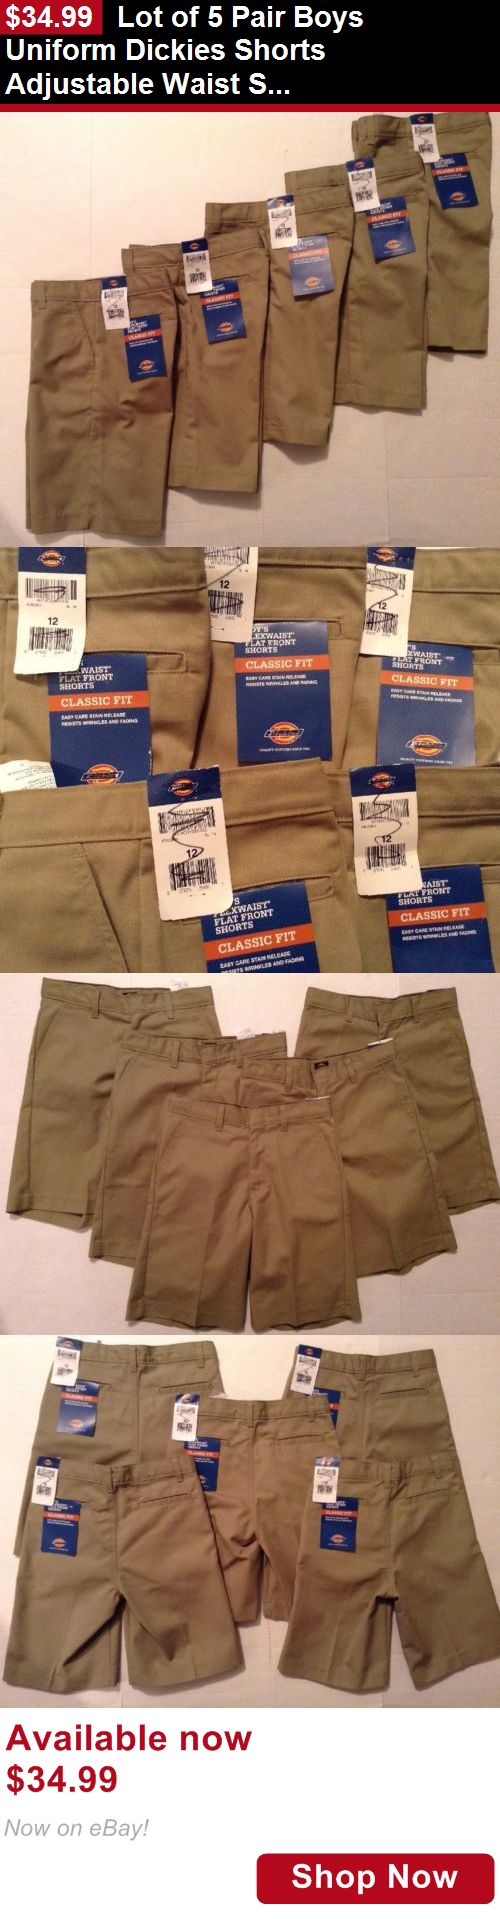 Boys uniforms: Lot Of 5 Pair Boys Uniform Dickies Shorts Adjustable Waist Size 12 Beige Nwt BUY IT NOW ONLY: $34.99